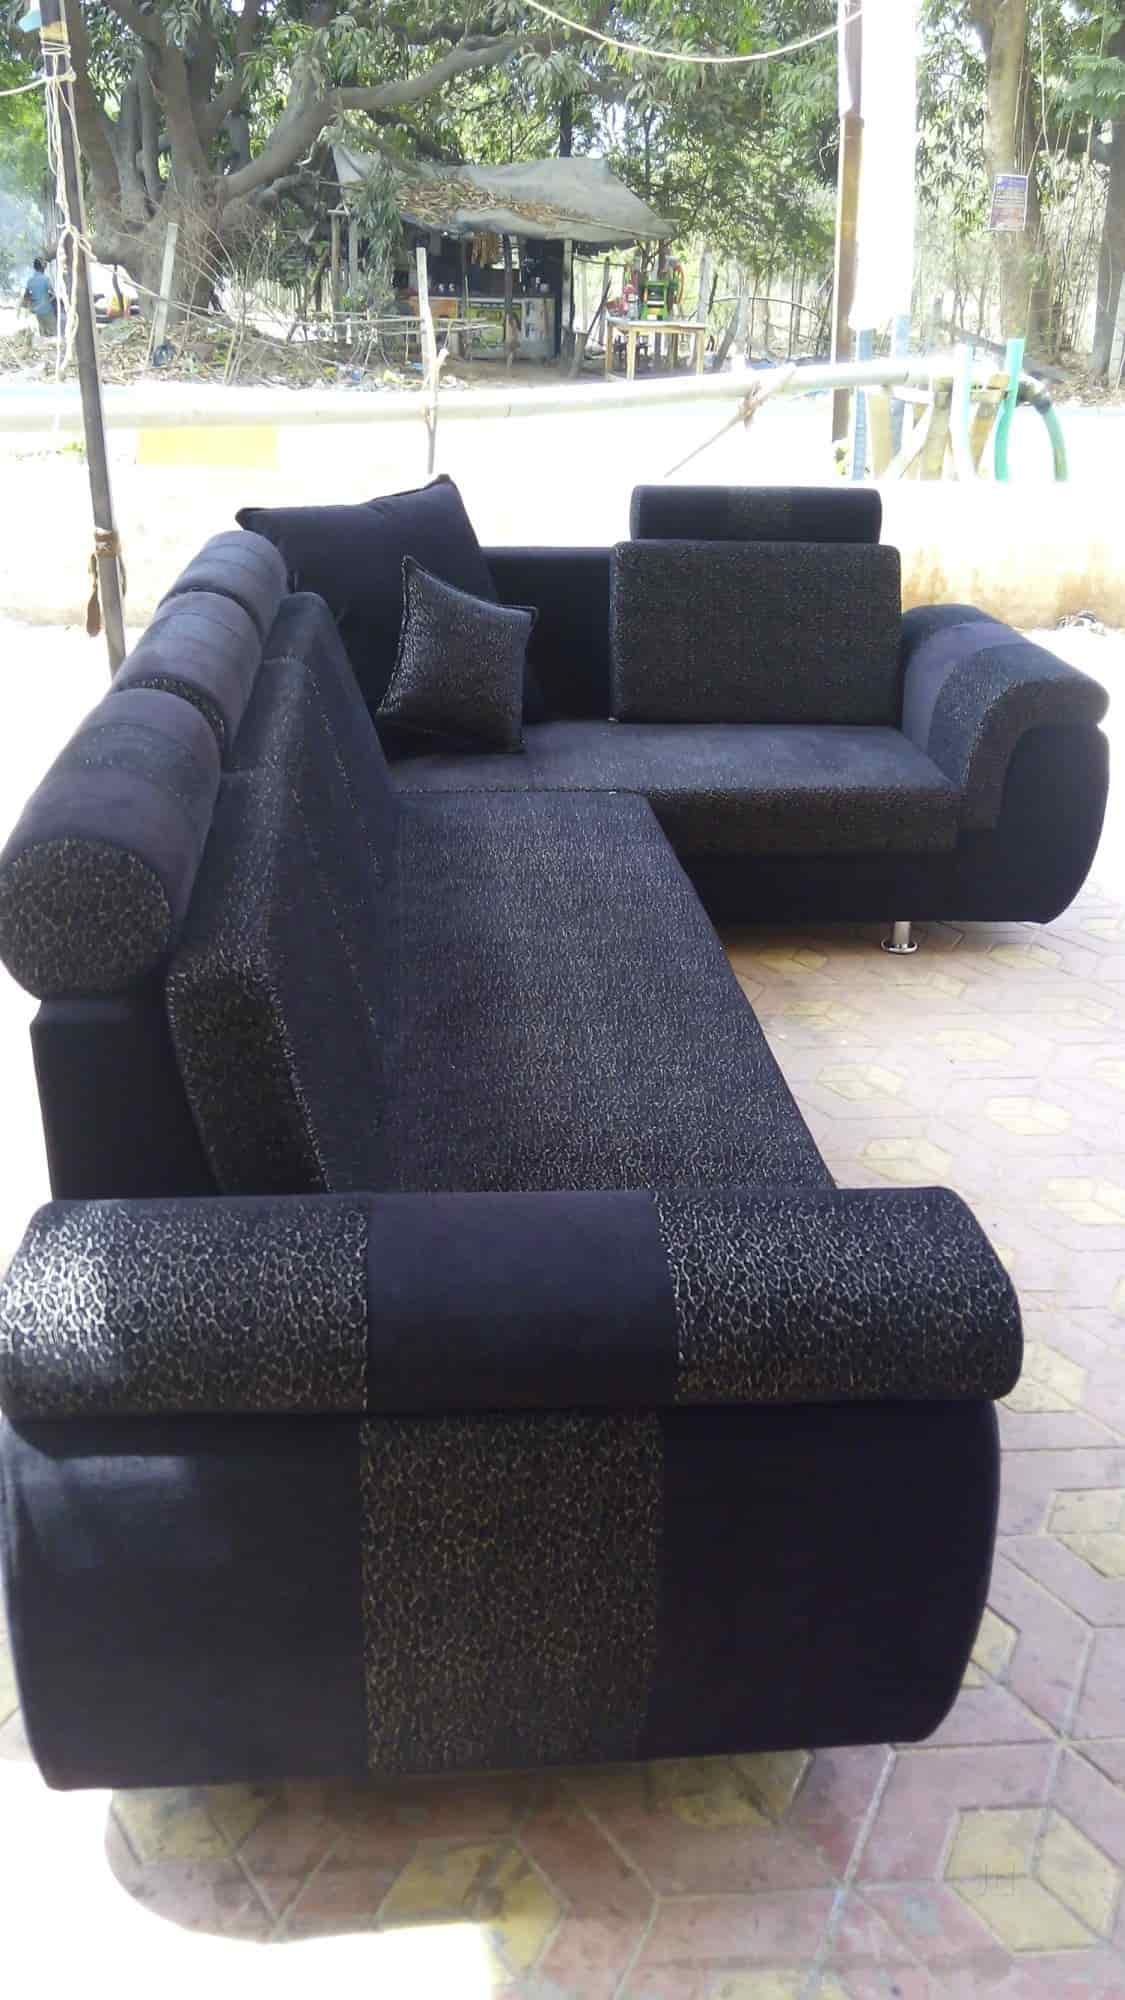 Society Sofa Furniture Market Industrial Estate Furniture